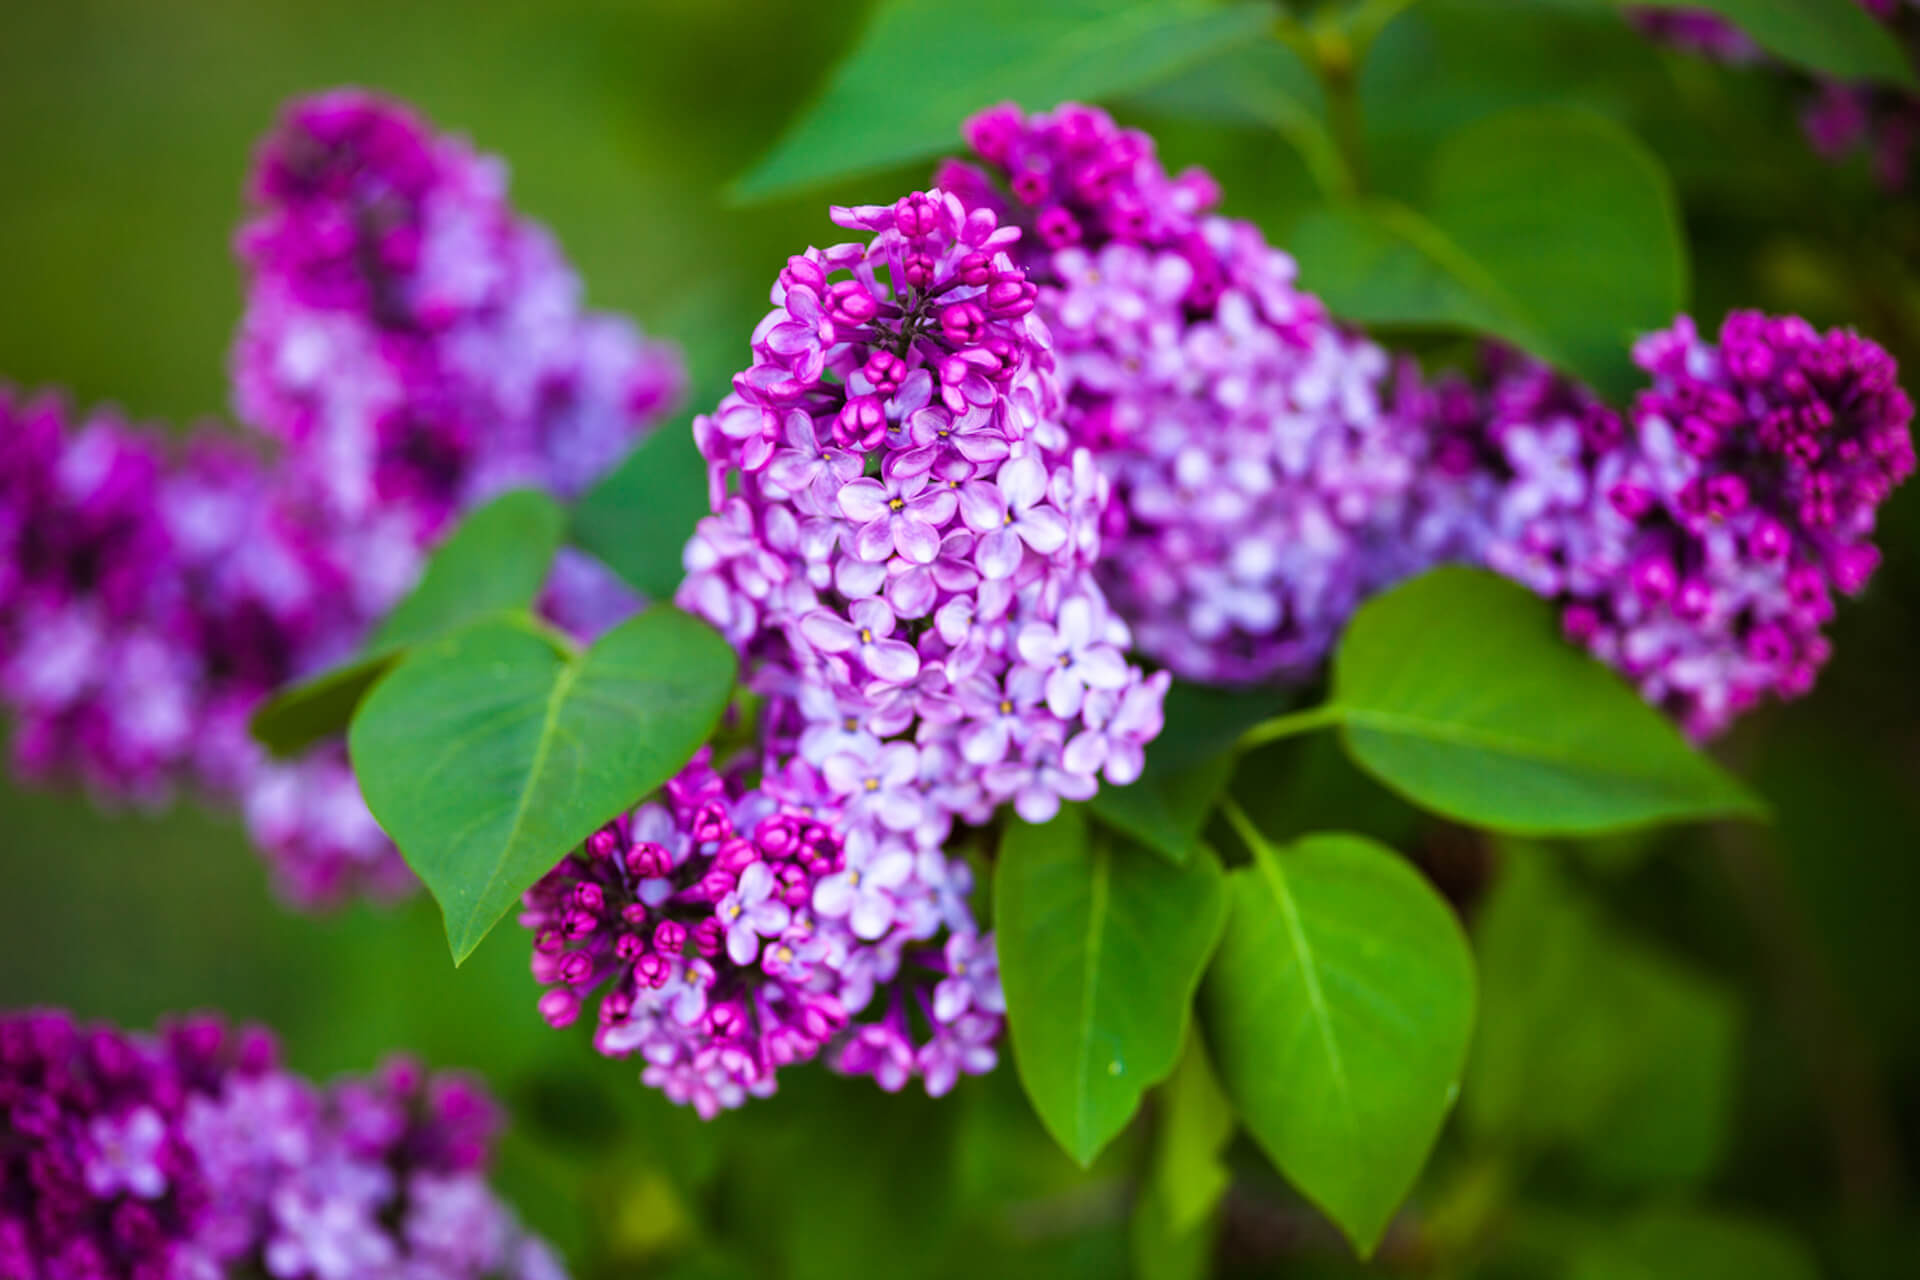 Branches of beautiful and delicate spring lilac flowers.